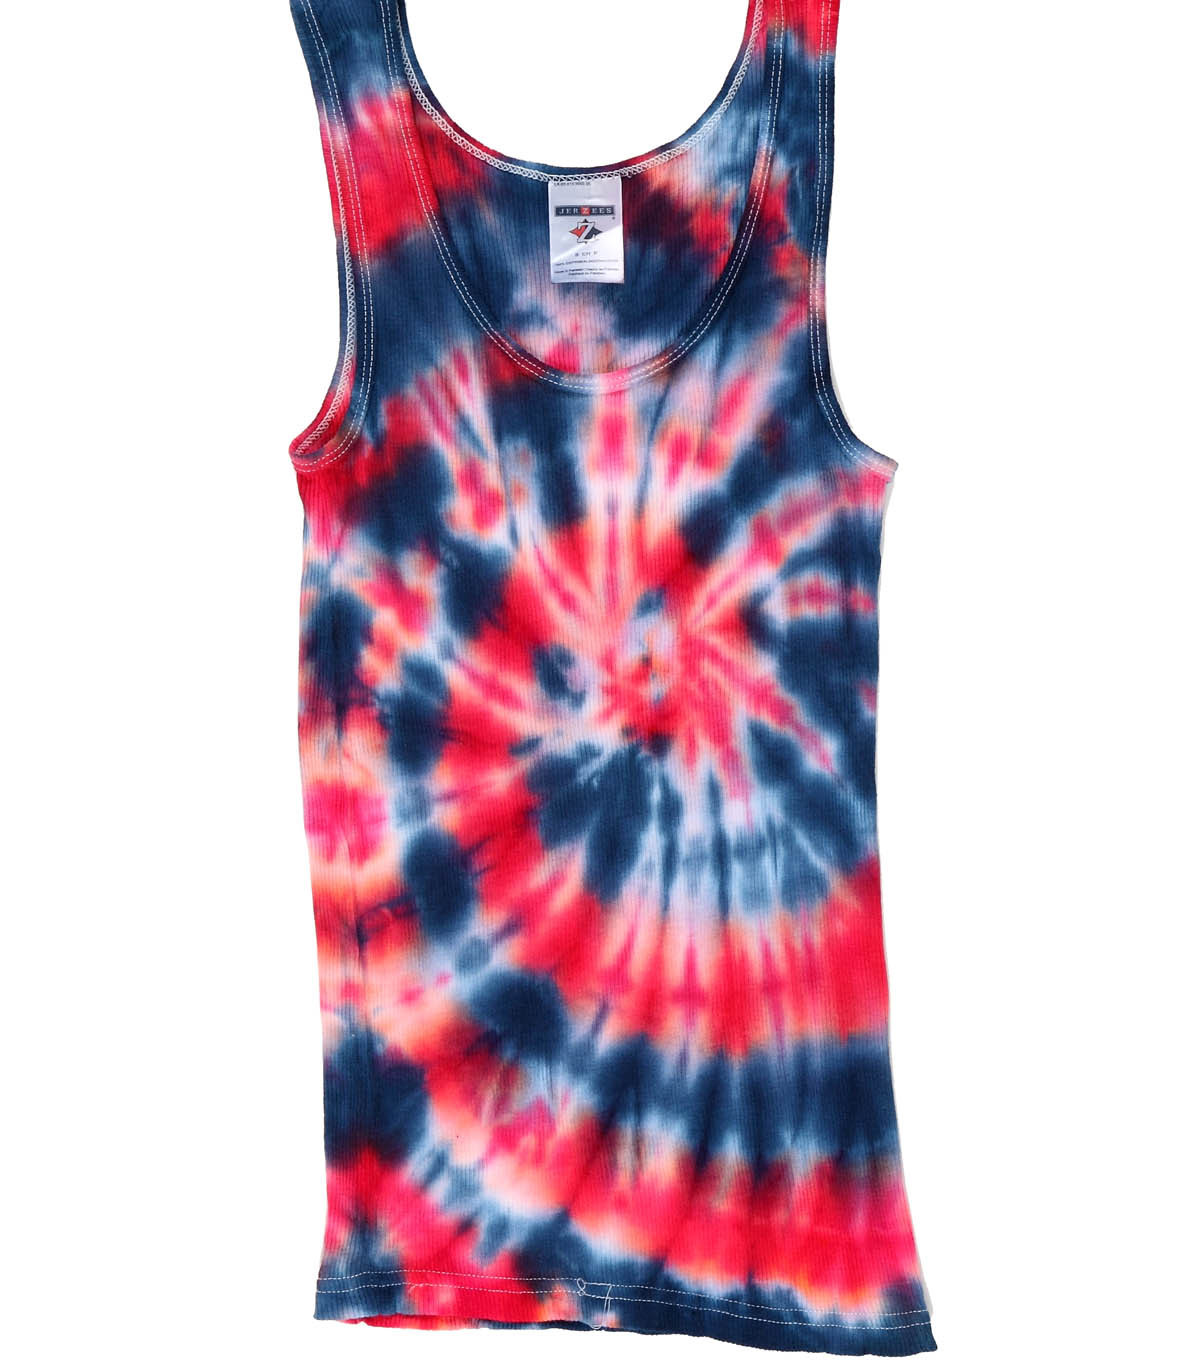 Psychedelic Spiral Tank Top